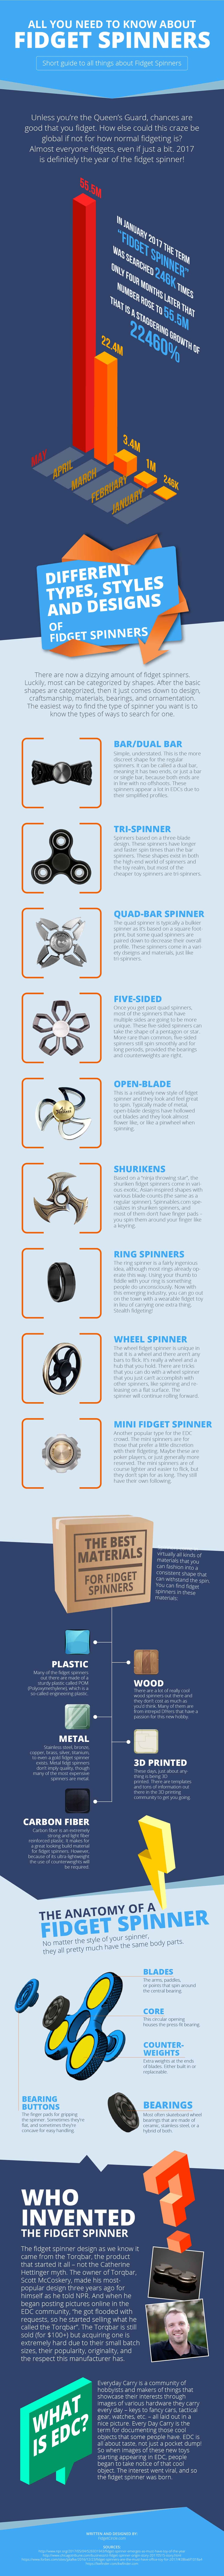 All You Need to Know About Fidget Spinners